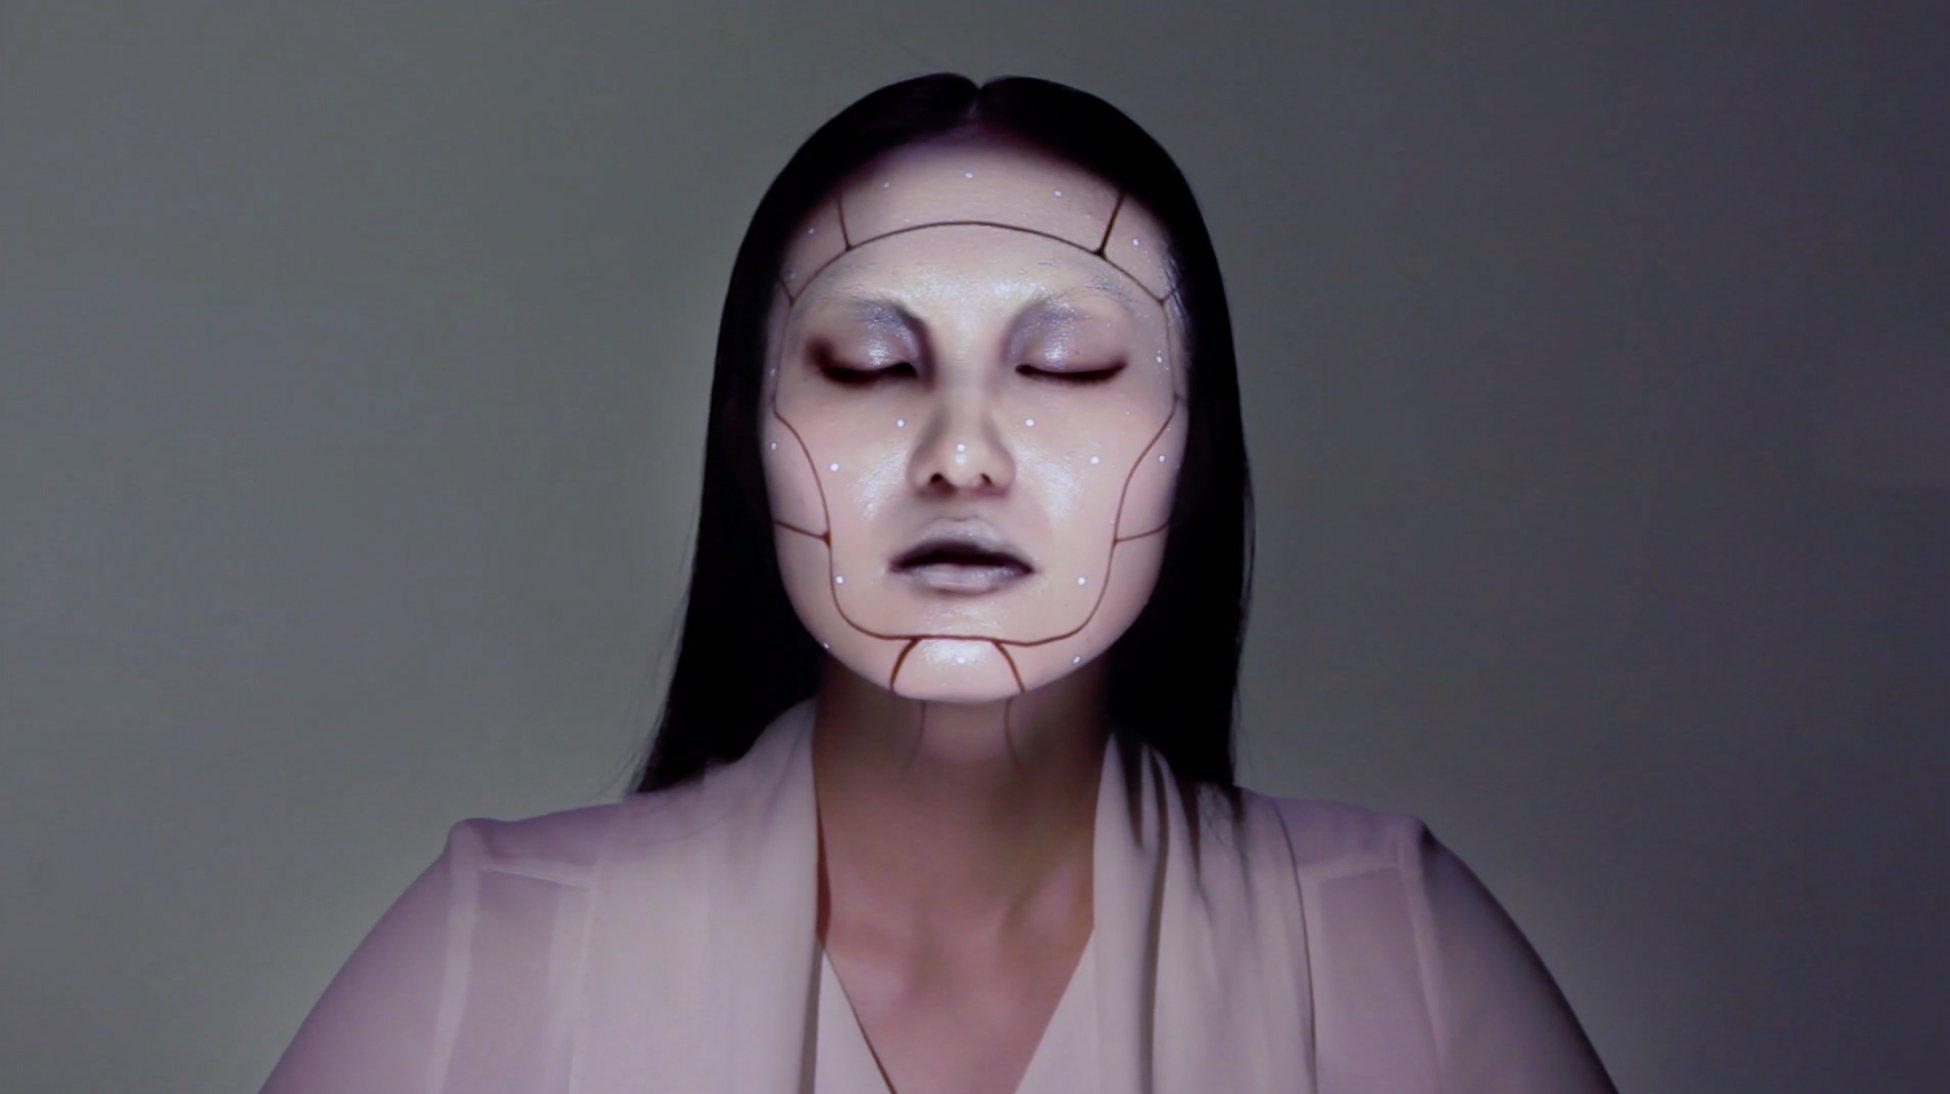 OMOTE--REALTIME-FACE-TRACKING-&-PROJECTION-MAPPING